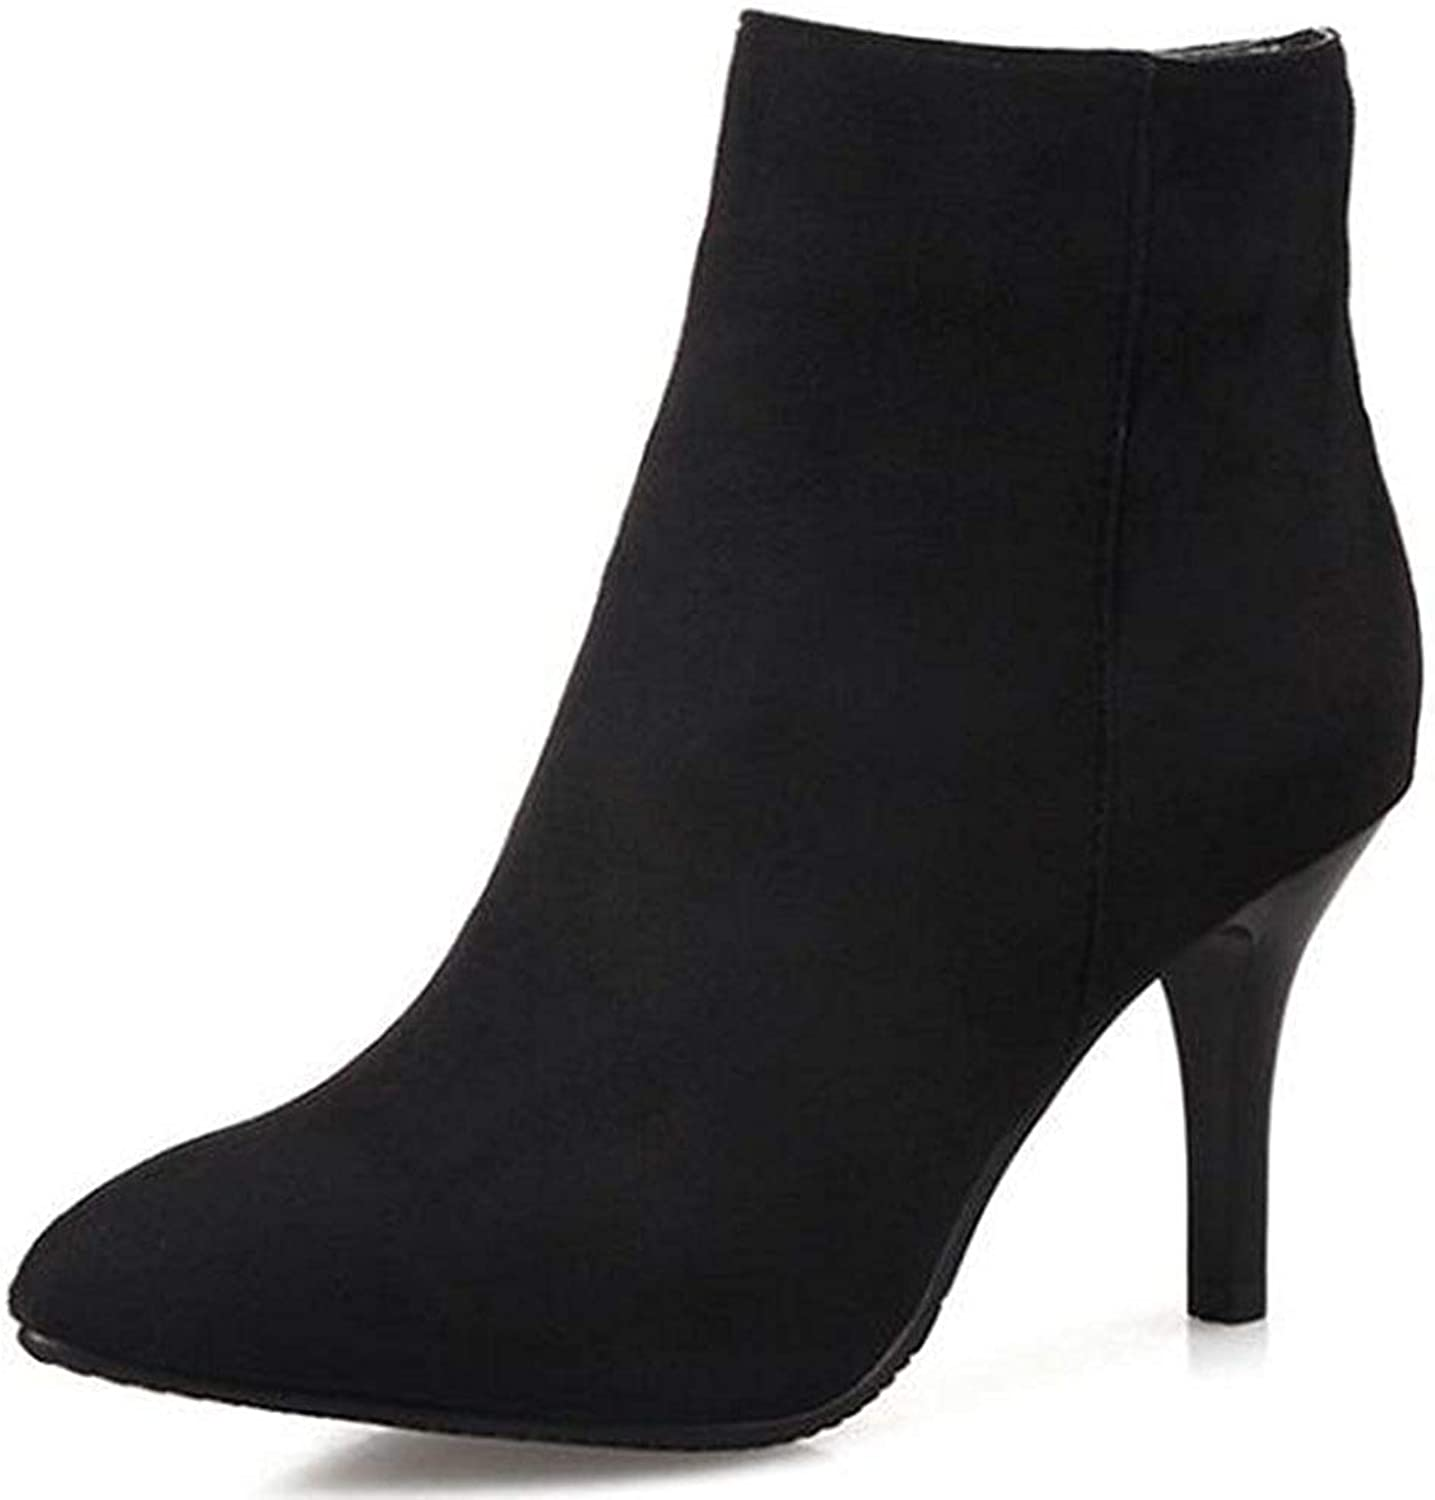 Lelehwhge Women's Sexy Pointed Toe Size Zipper Booties Stiletto High Heel Ankle Boots bluee 10.5 M US